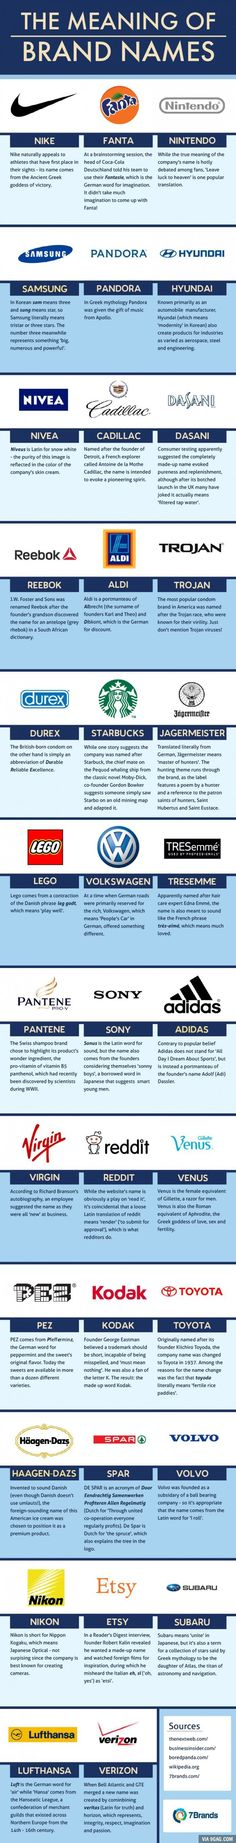 Food infographic Food infographic iNFOGRAPHIE > The meaning of brand names // marques-histoir… Infographic Description Food infographic iNFOGRAPHIE > The meaning of brand names // marques-histoire-IEUP – Infographic Source – - #Food